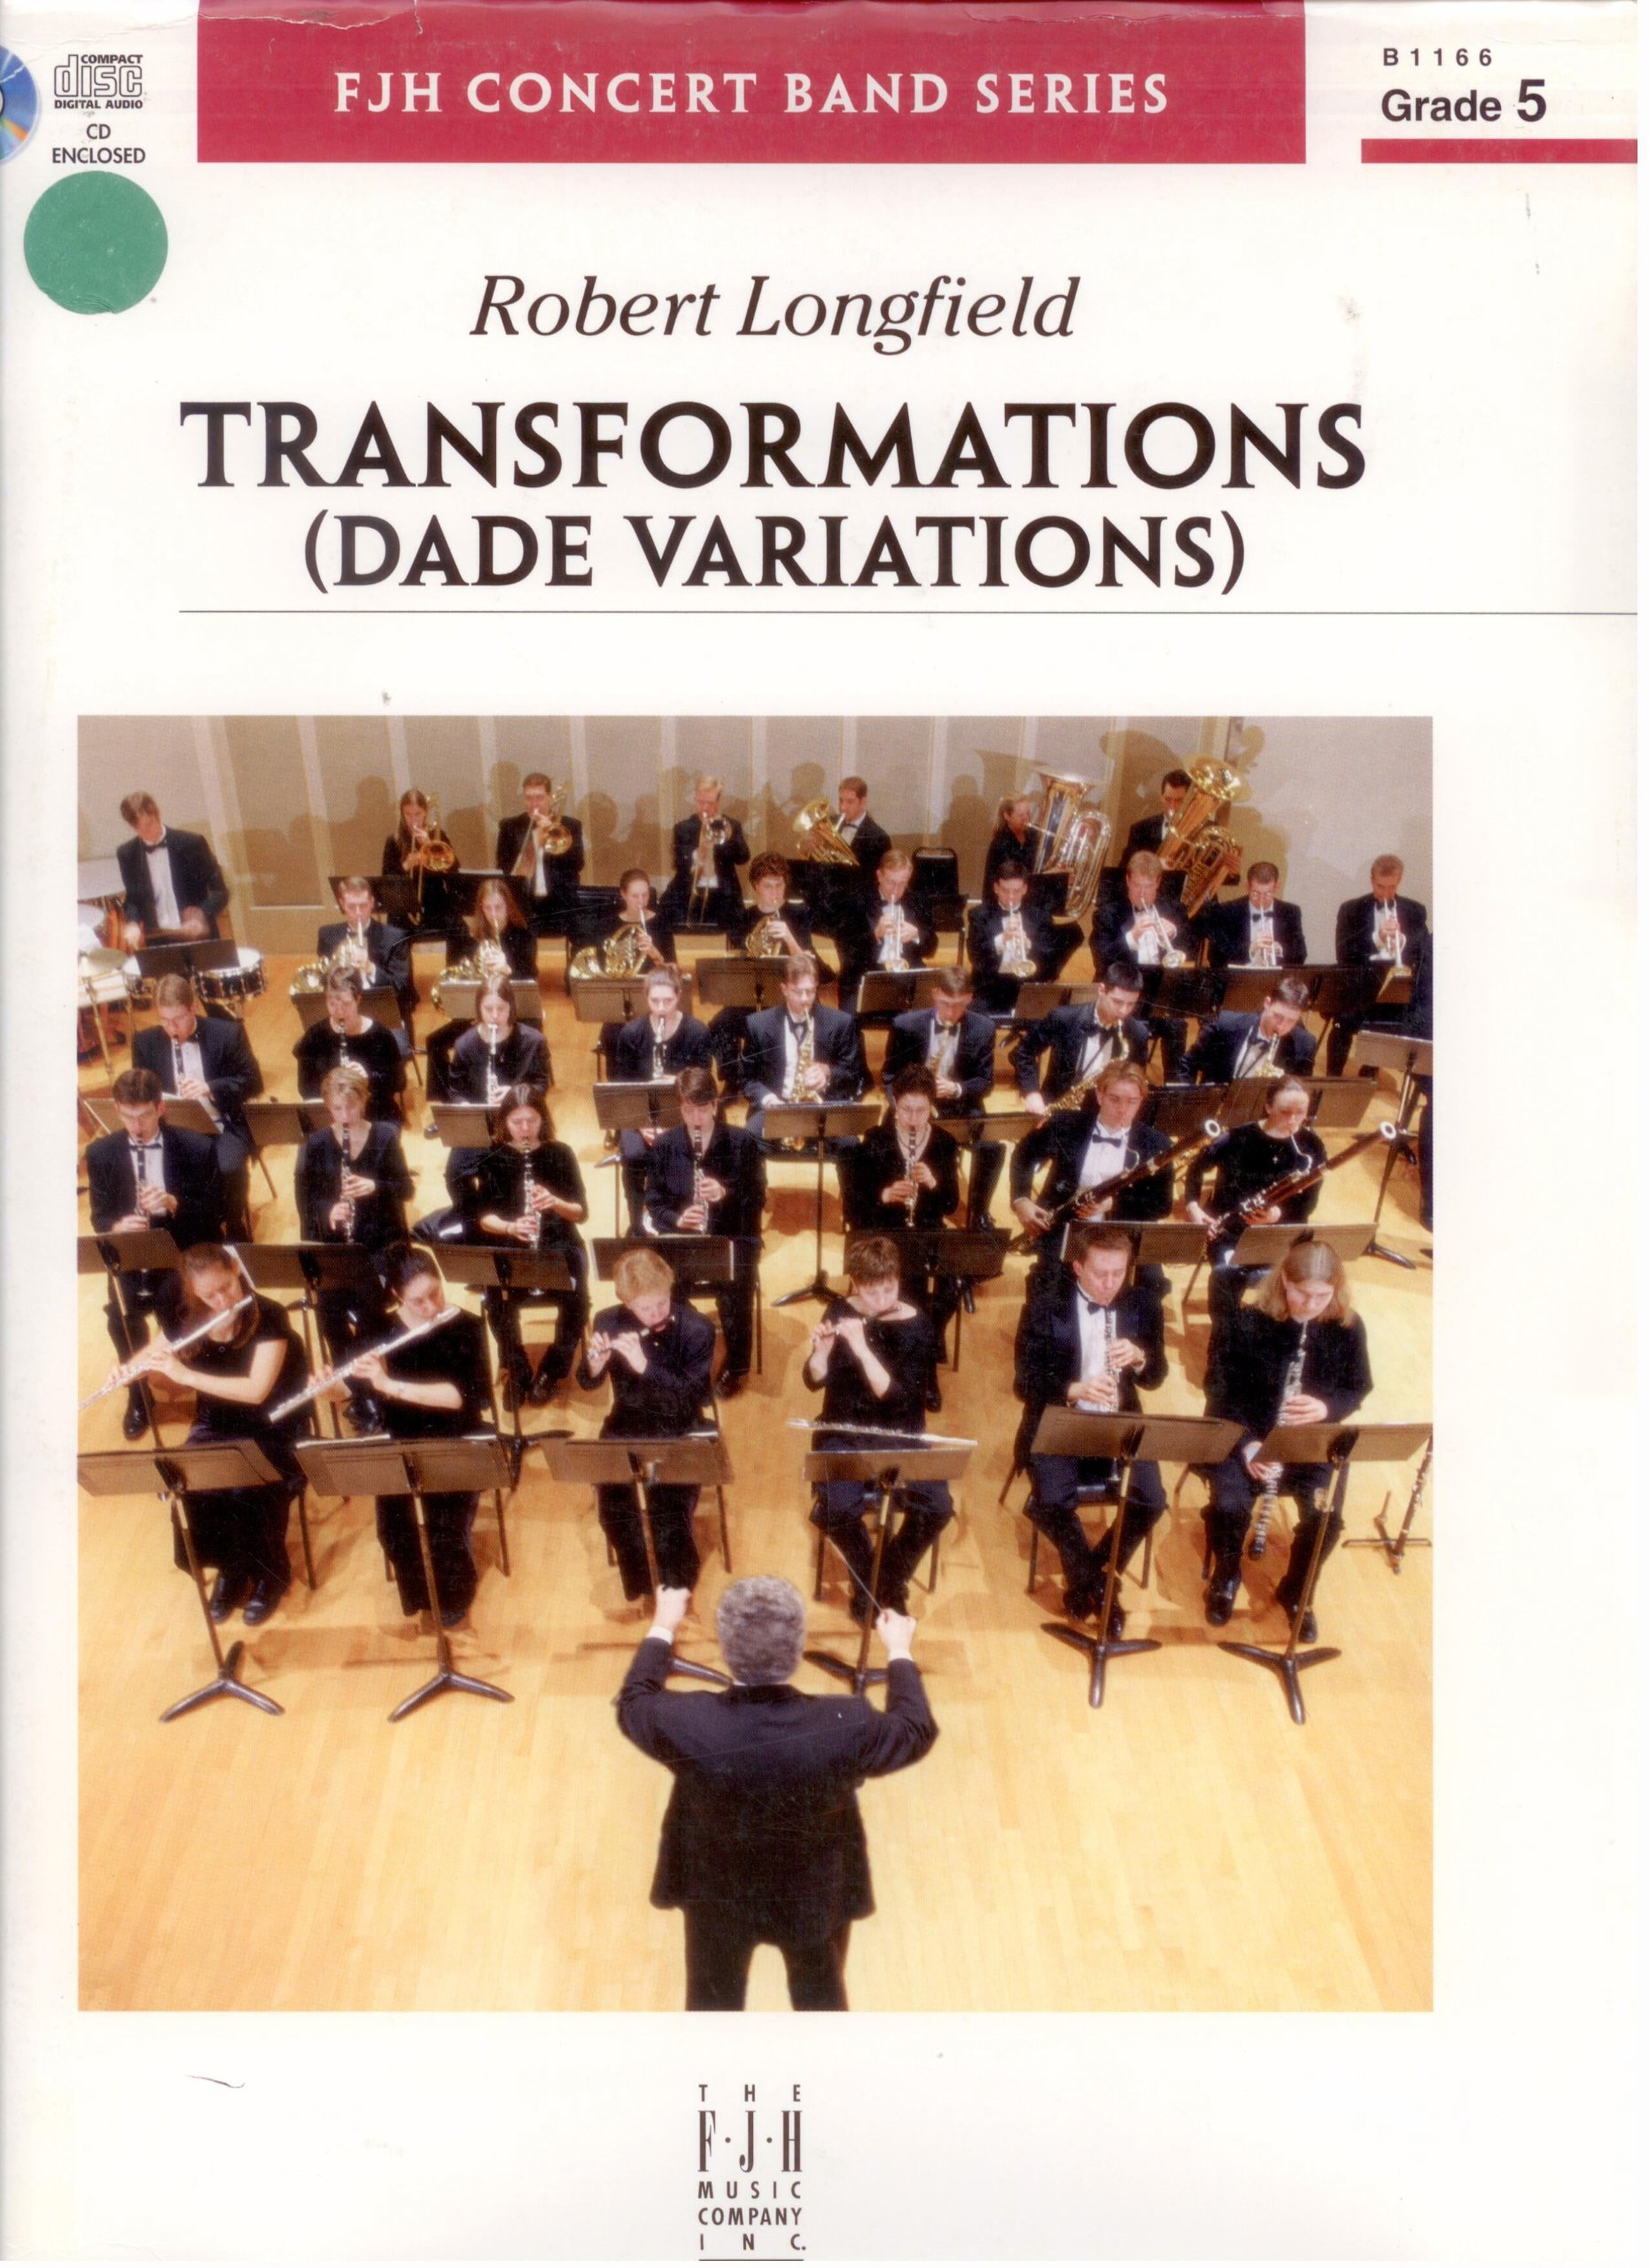 """Read Online """"Transformations (Dade Variations)"""" for Concert Band (Complete Set--Conductor Score, Parts, and CD) (Grade 5, B1166) PDF"""